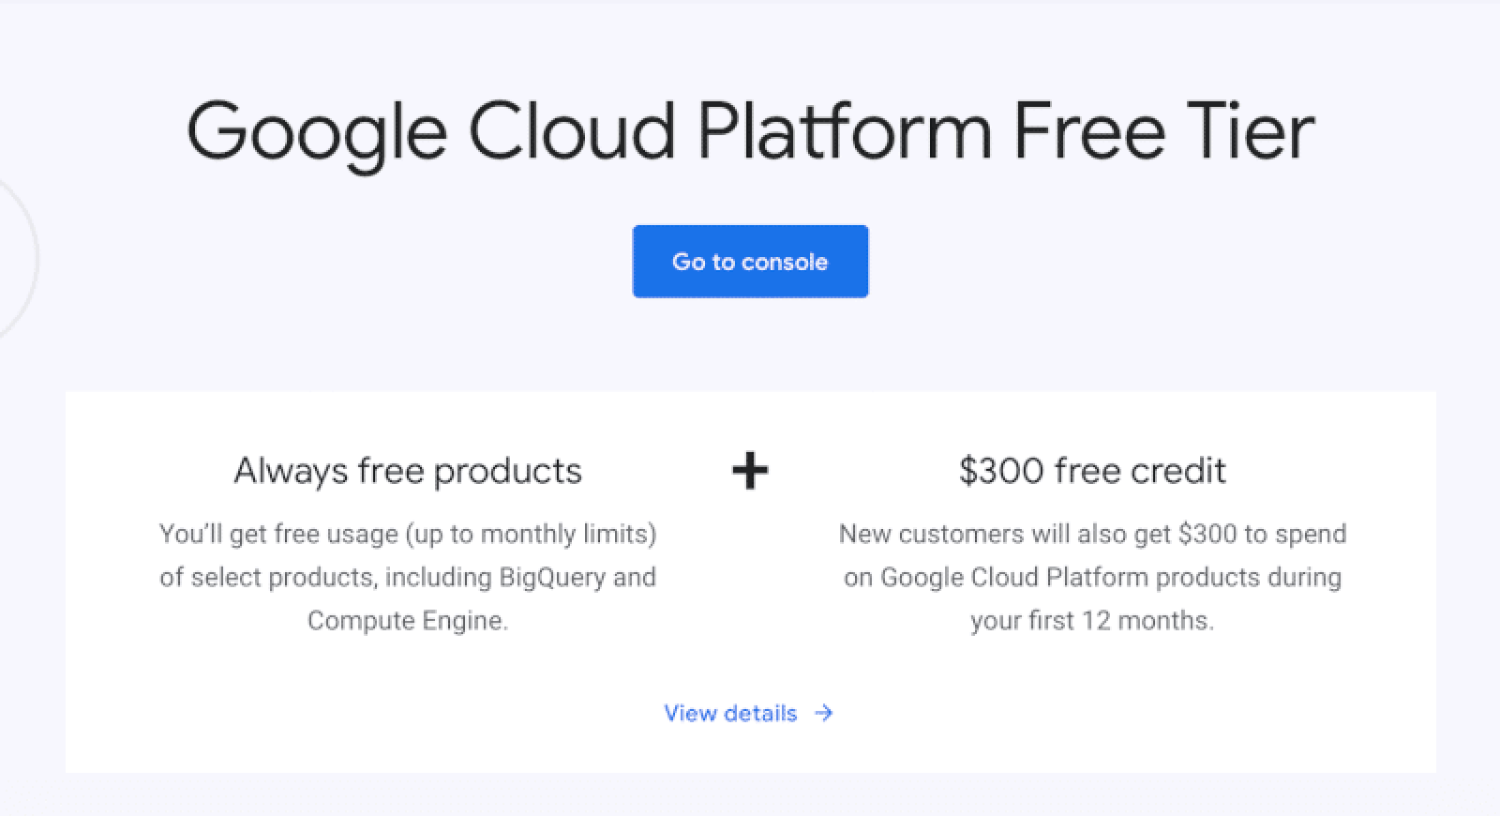 Google Cloud Platform Free Tier